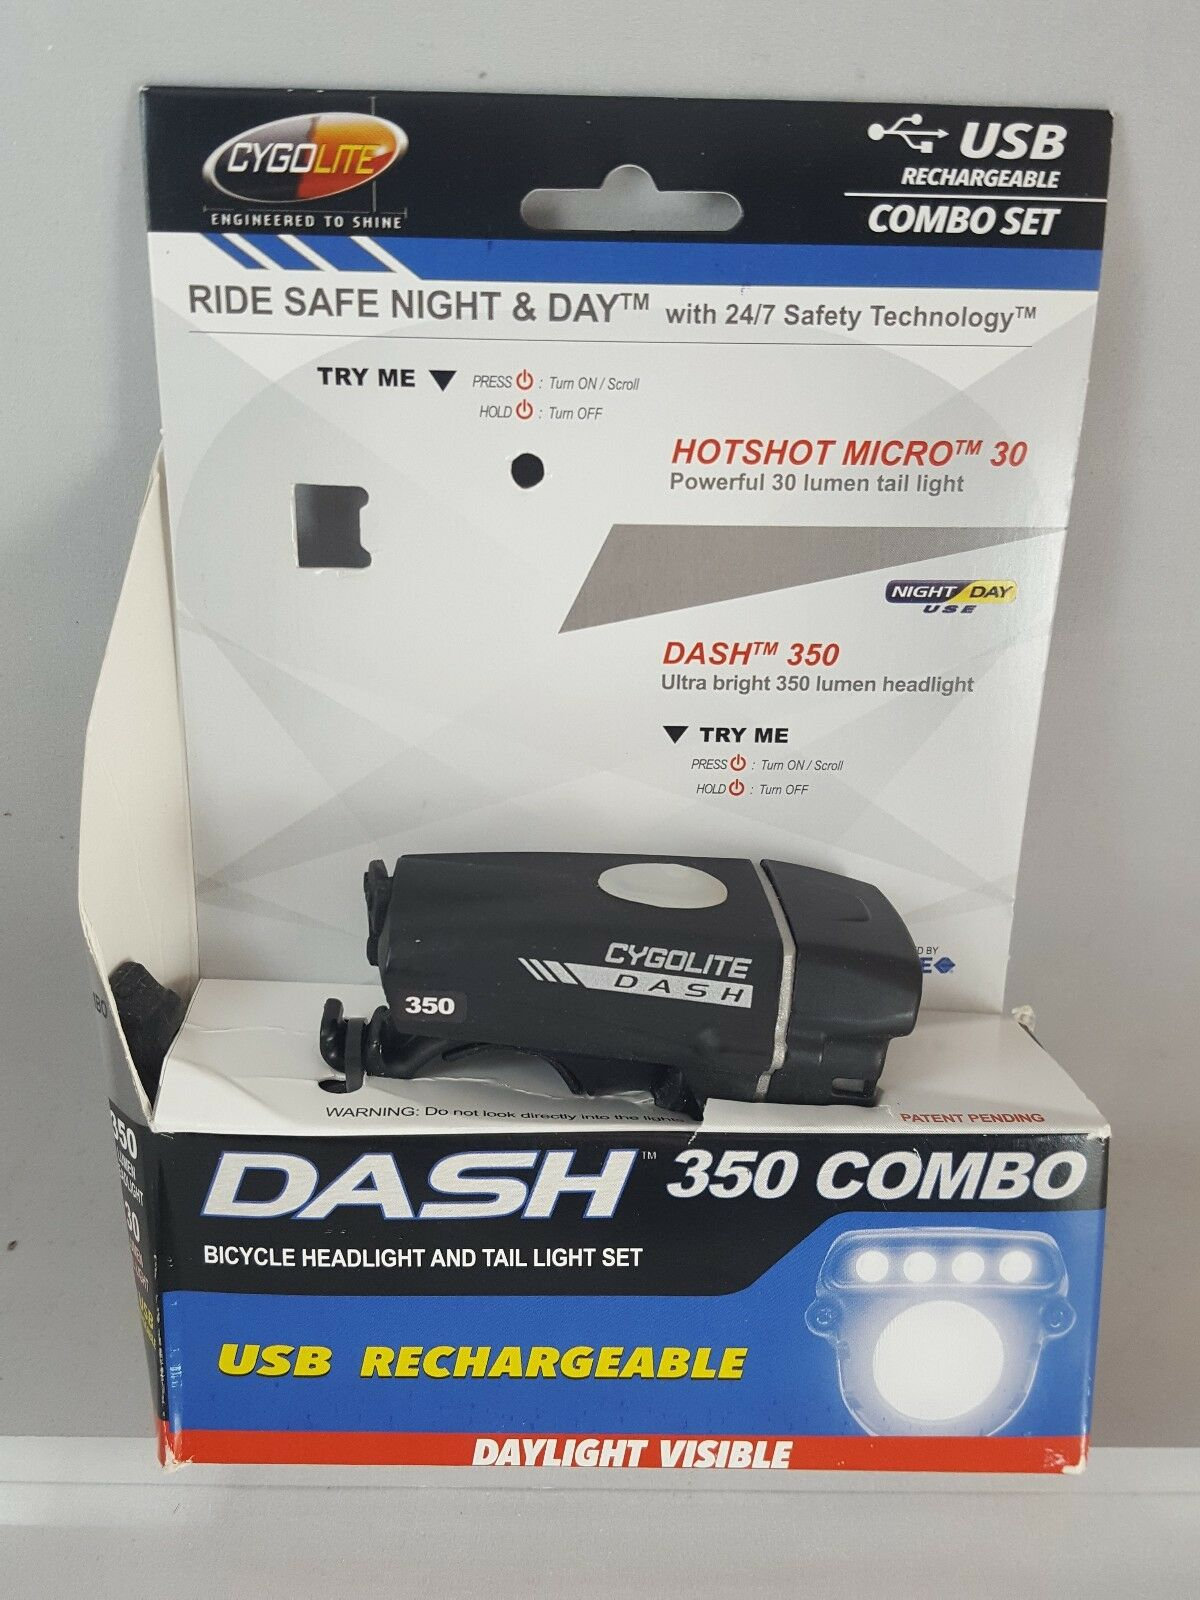 Cygolite Dash 350 Bicycle Headlight And Mount Rechargeable Front Light ONLY